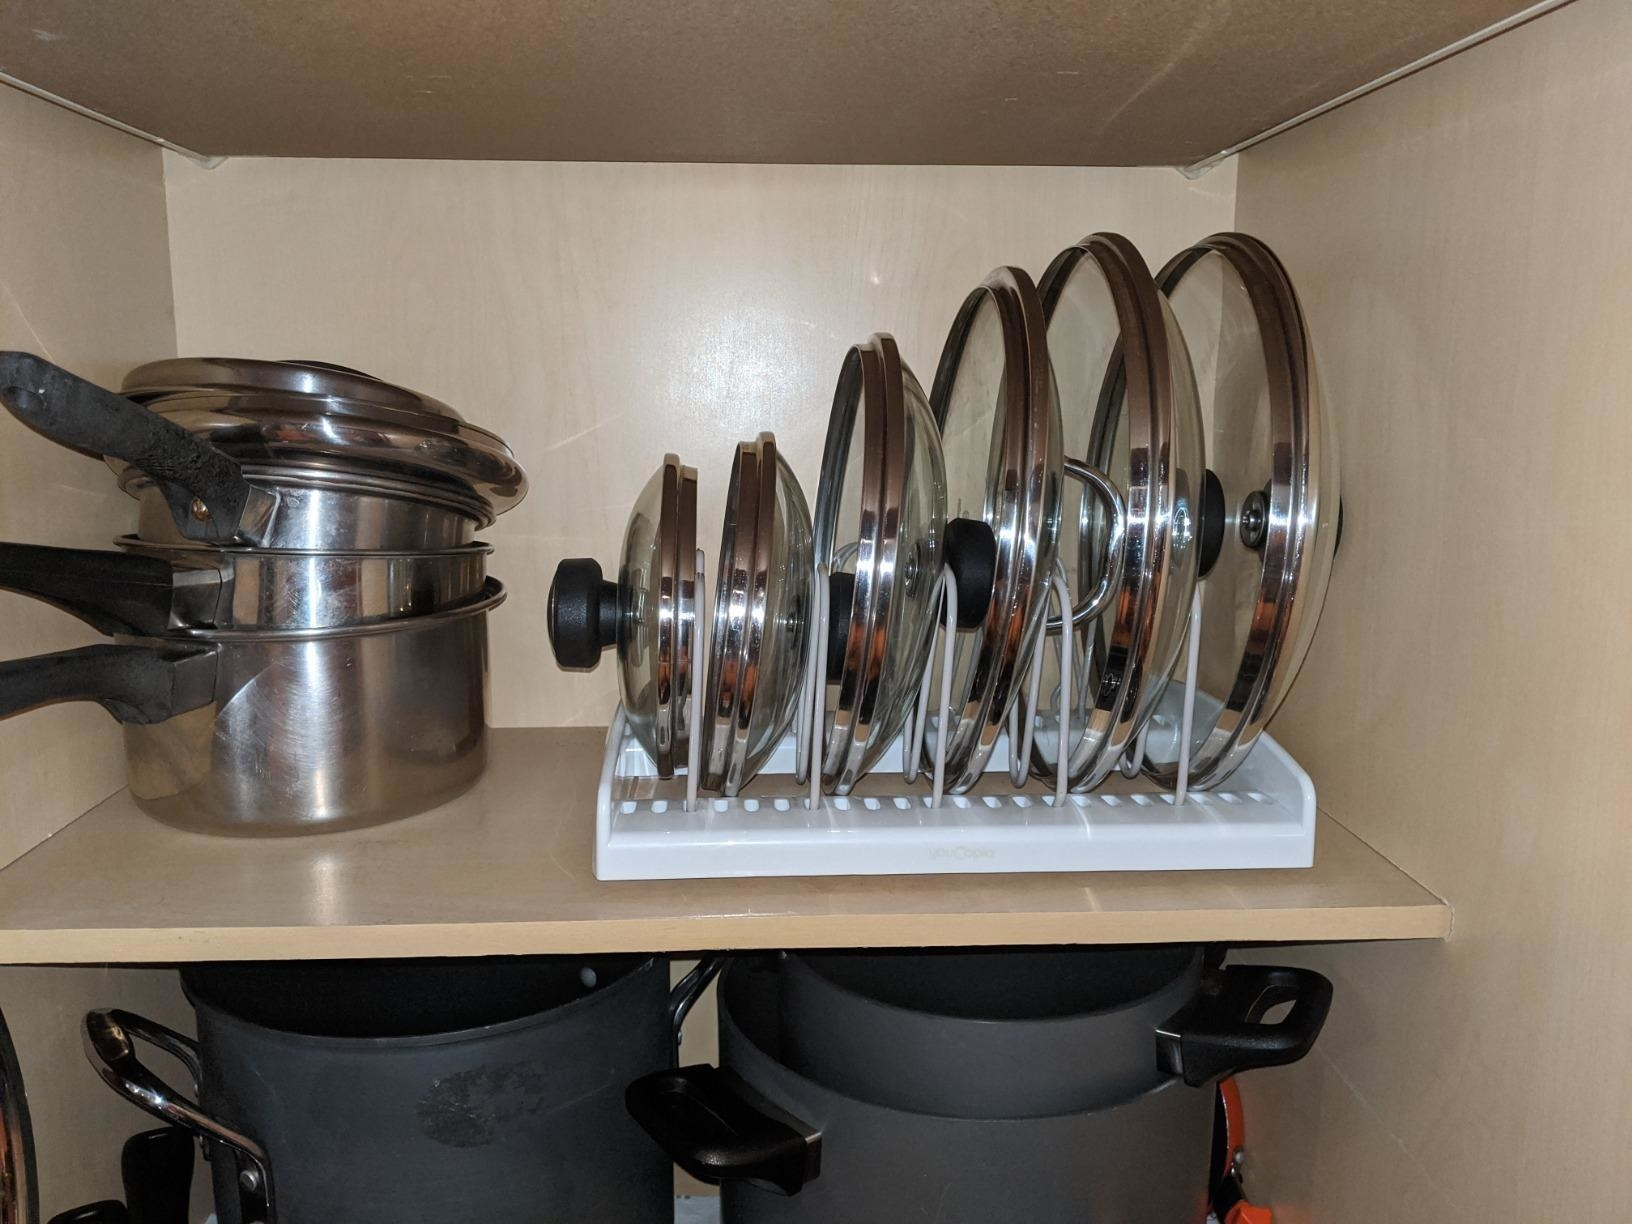 reviewer photo showing lids to pots and pans neatly organized in the bakeware rack